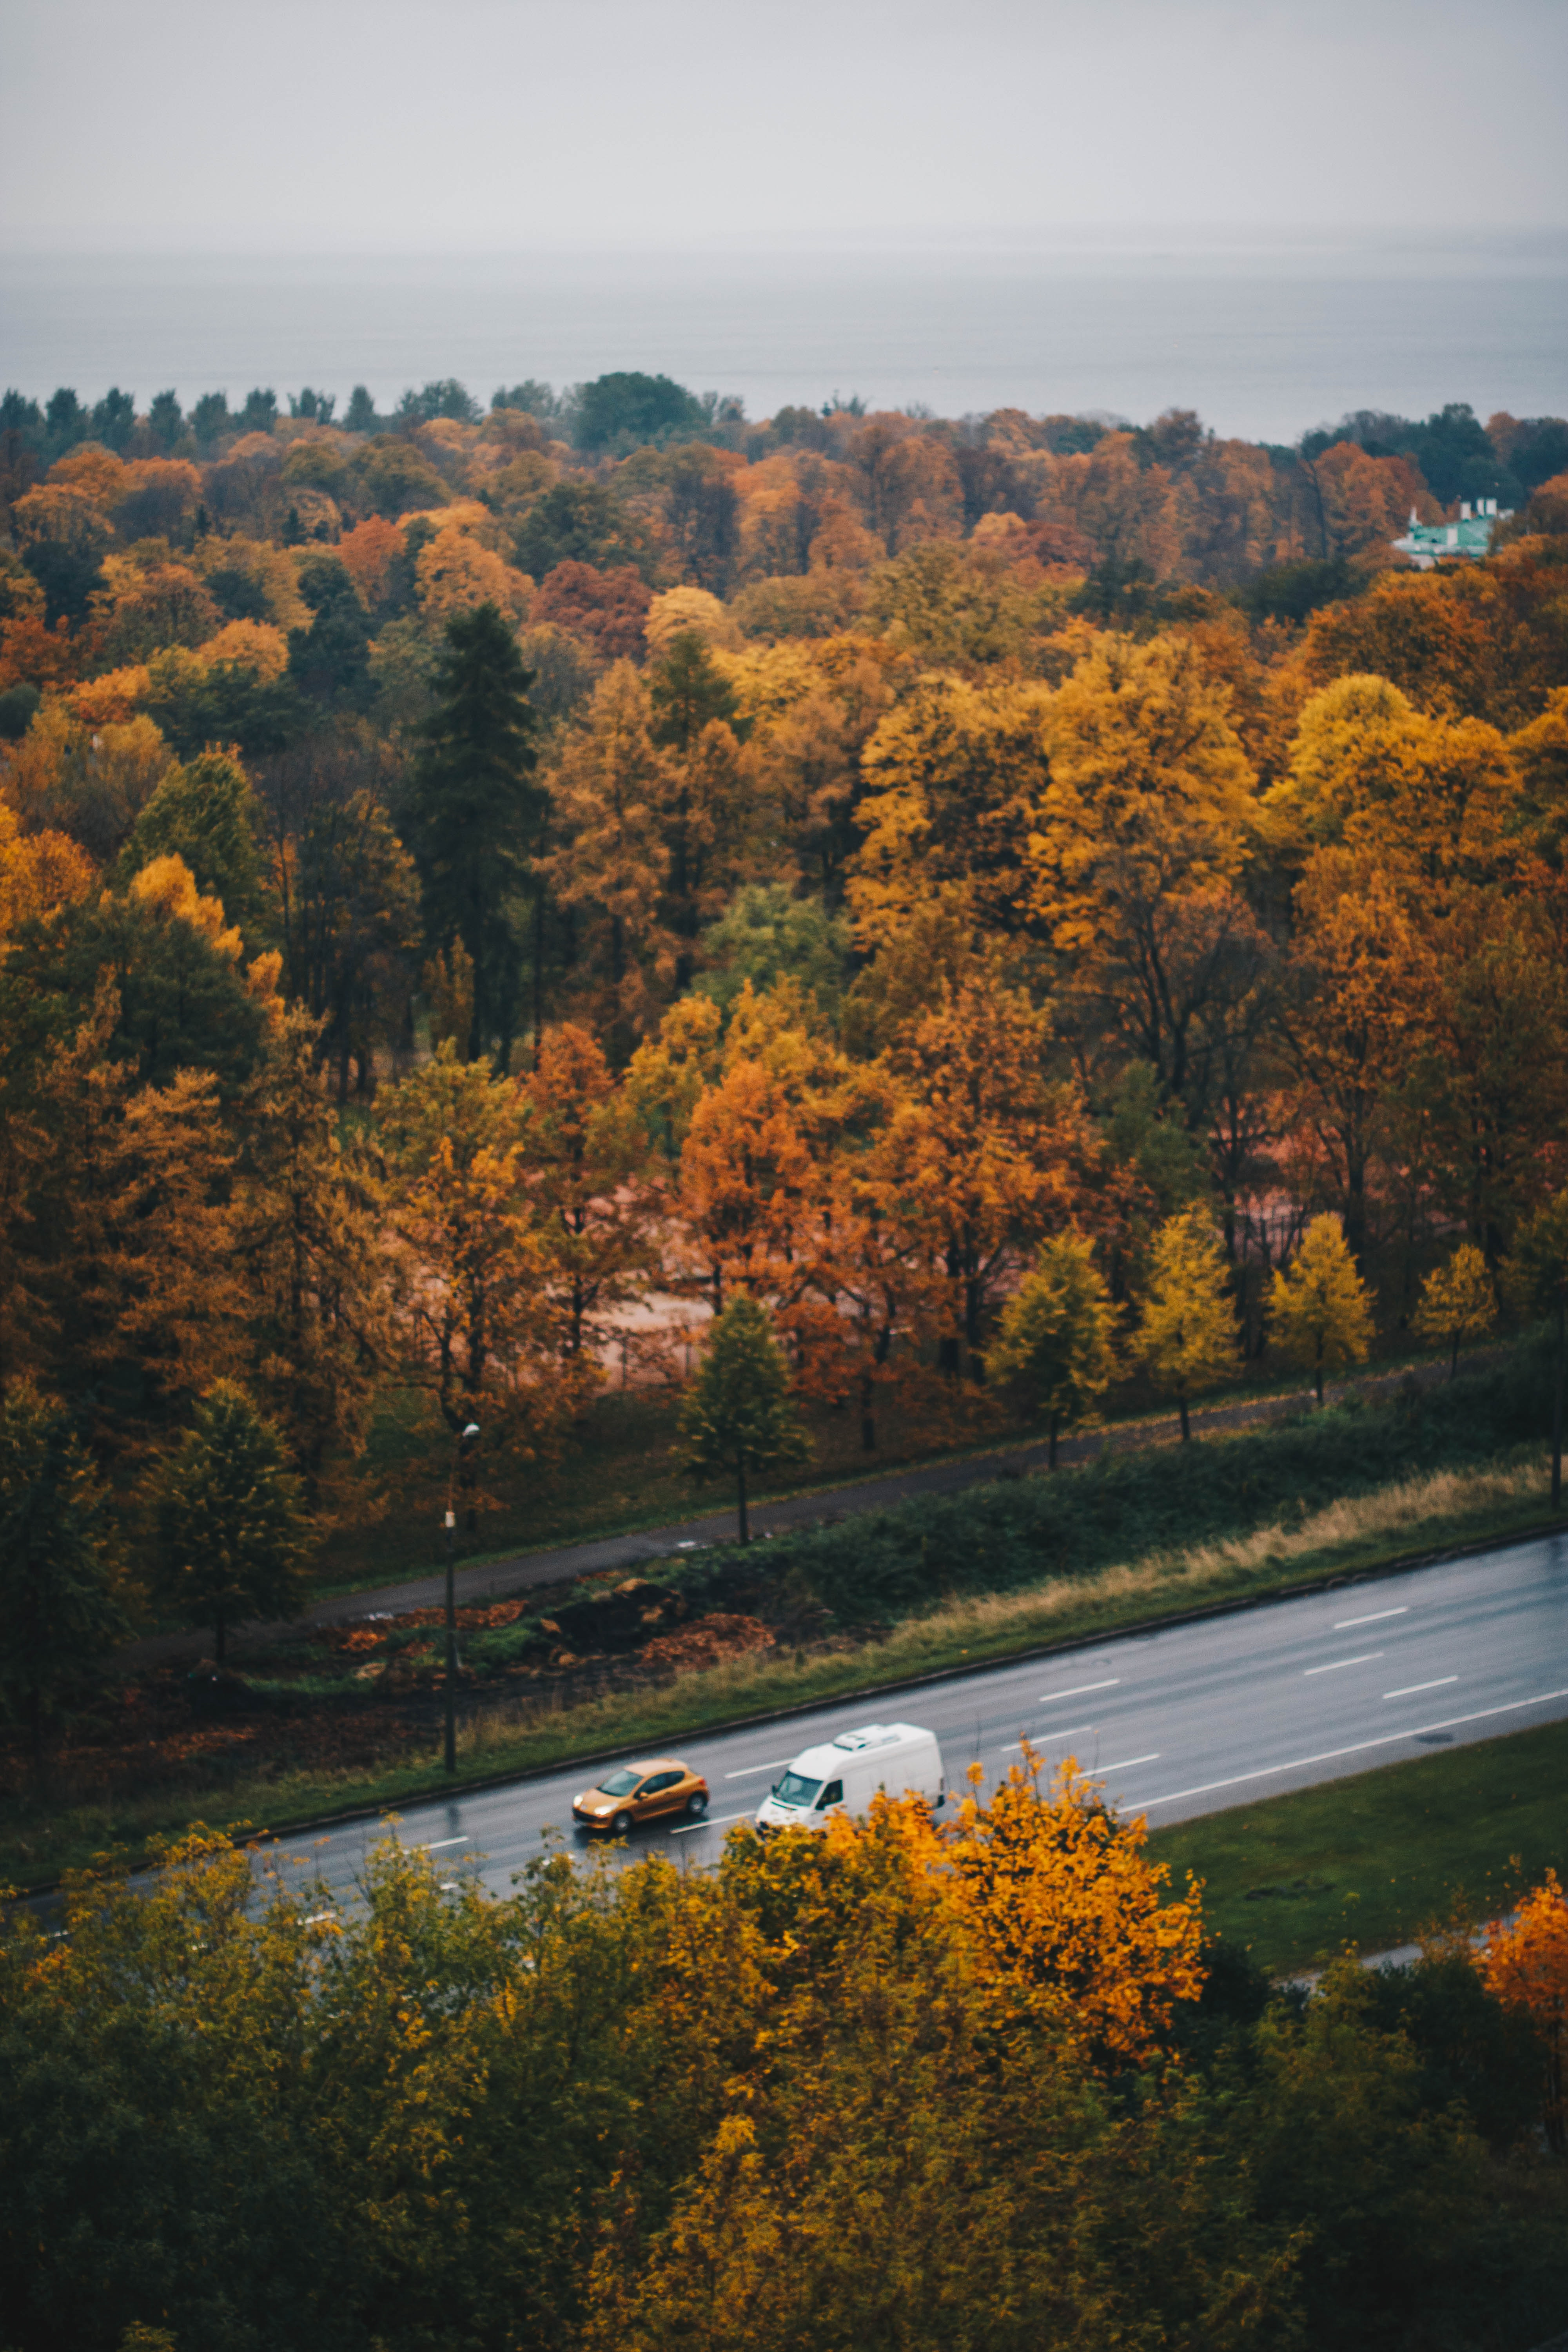 Overview of Brown Leaf Trees and Road, Aerial view, Outdoors, Vehicles, Trees, HQ Photo